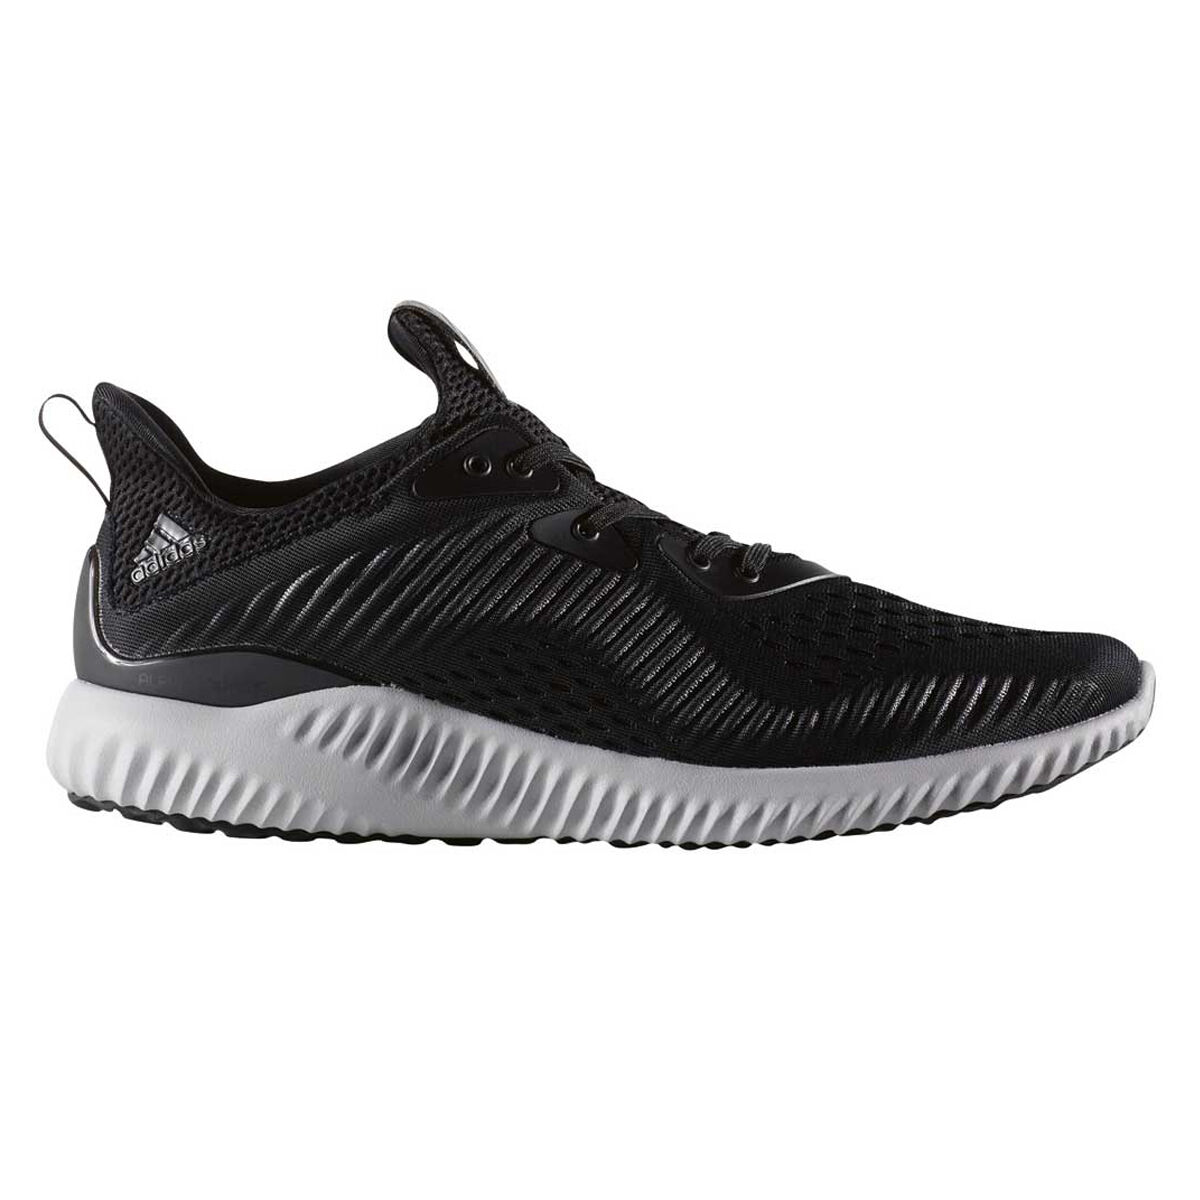 adidas Alphabounce EM Shoes Mens Running Shoes | Discount